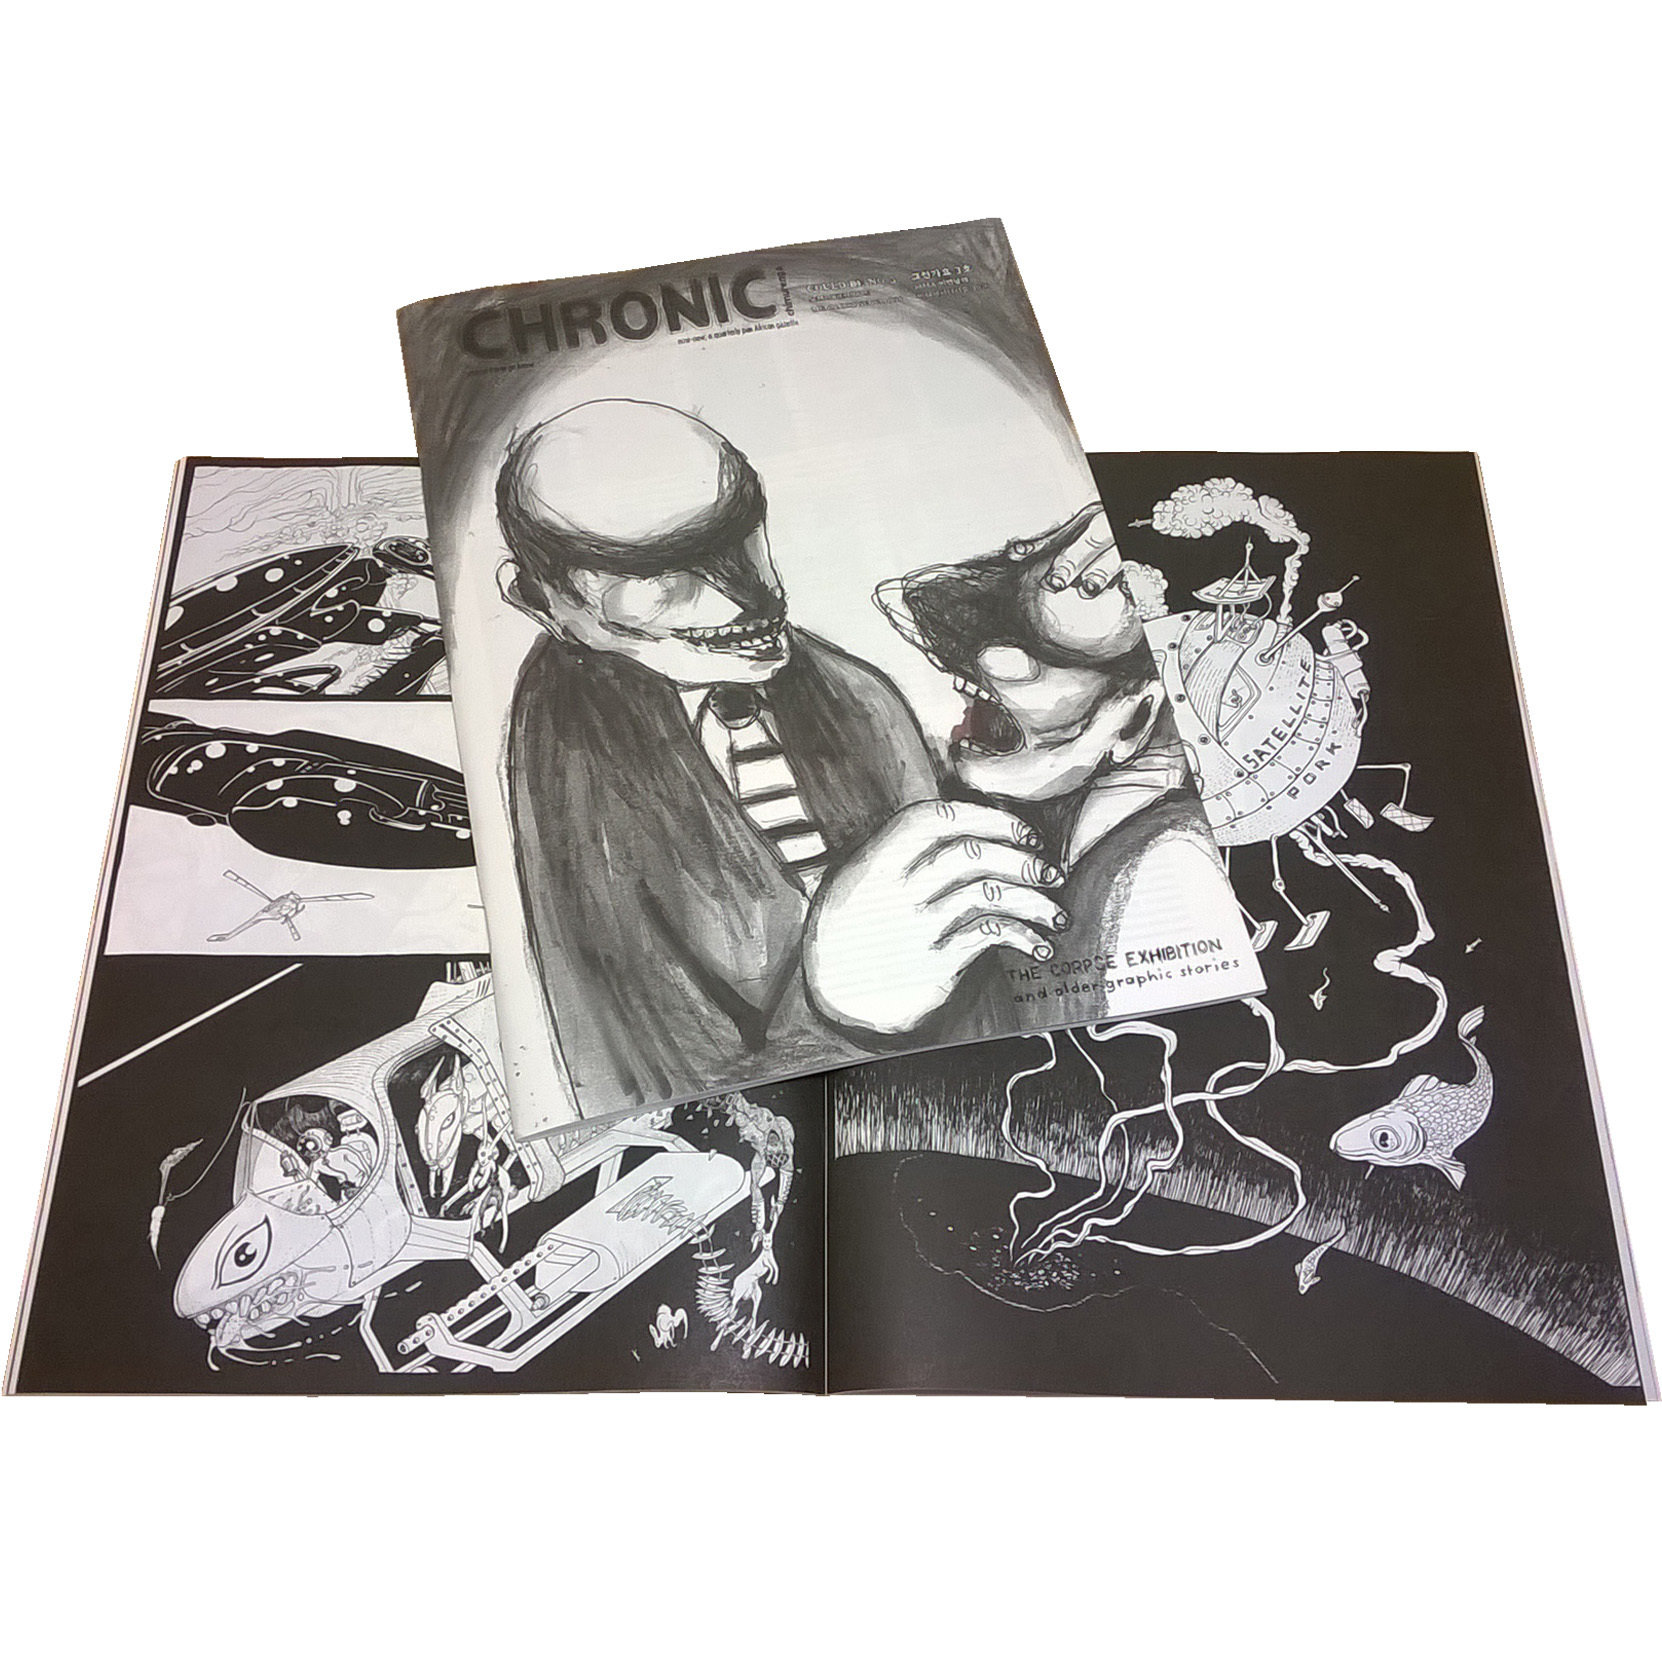 Chimurenga Chronic: The Corpse Exhibition & Older Graphic Stories (August 2016) Print  -  2017 Winner Nommo Award for Best Speculative Fiction Graphic Novel by Africans CC0816